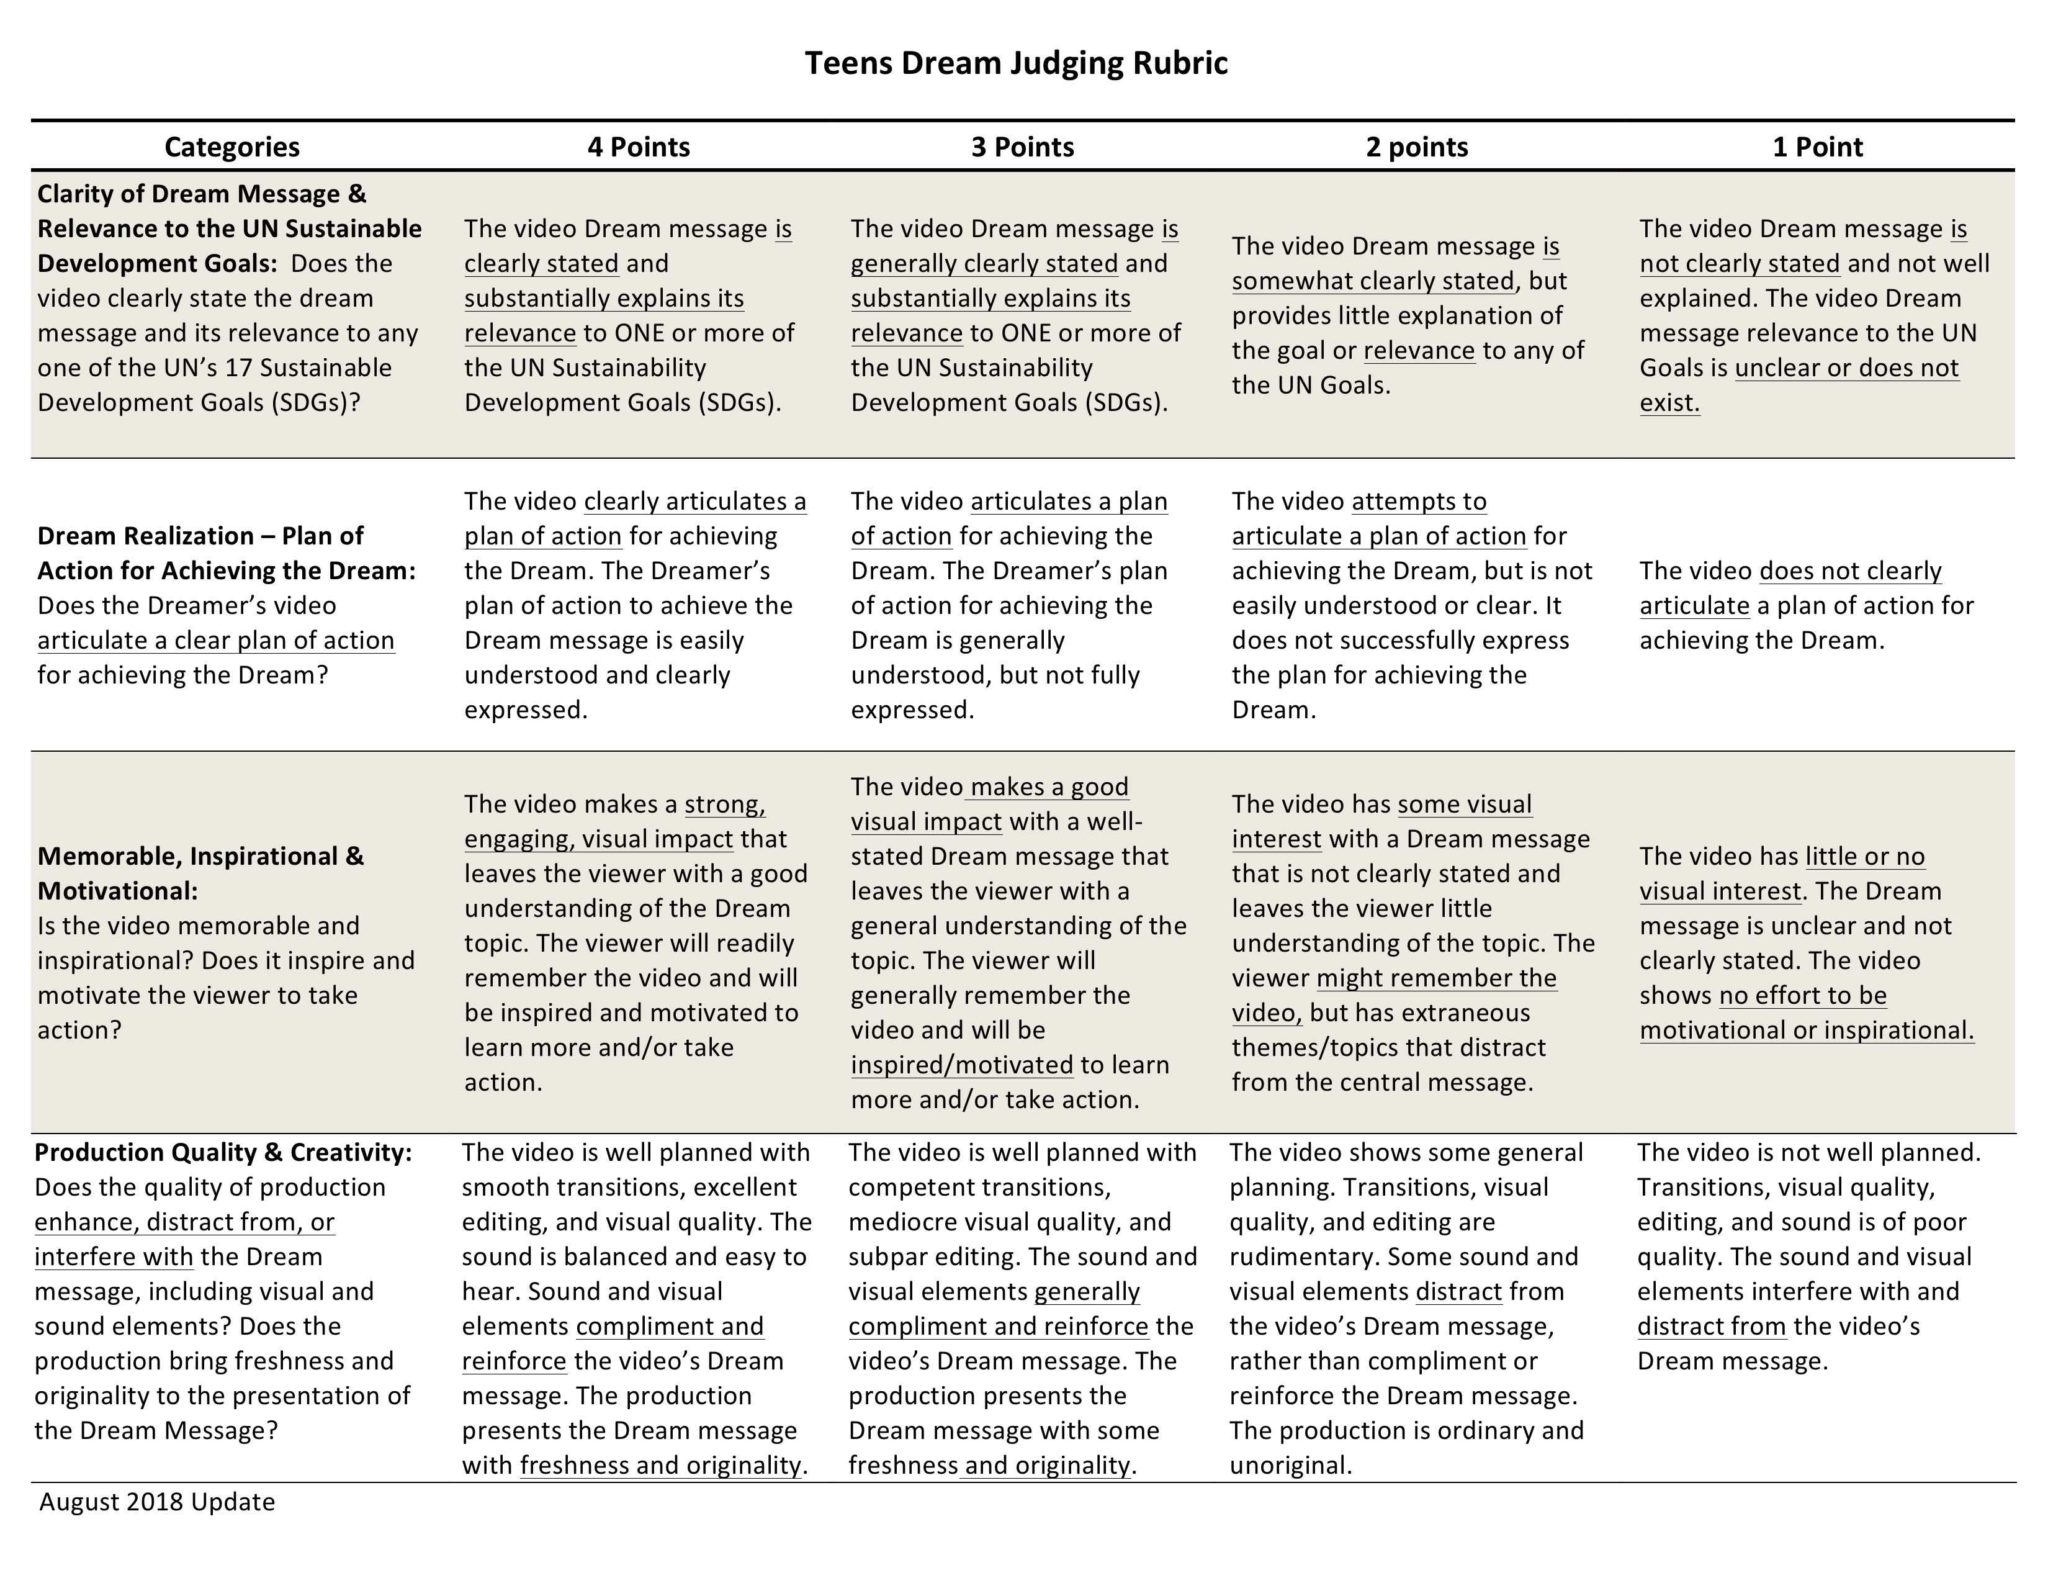 2016 Teens Dream Judging Rubric